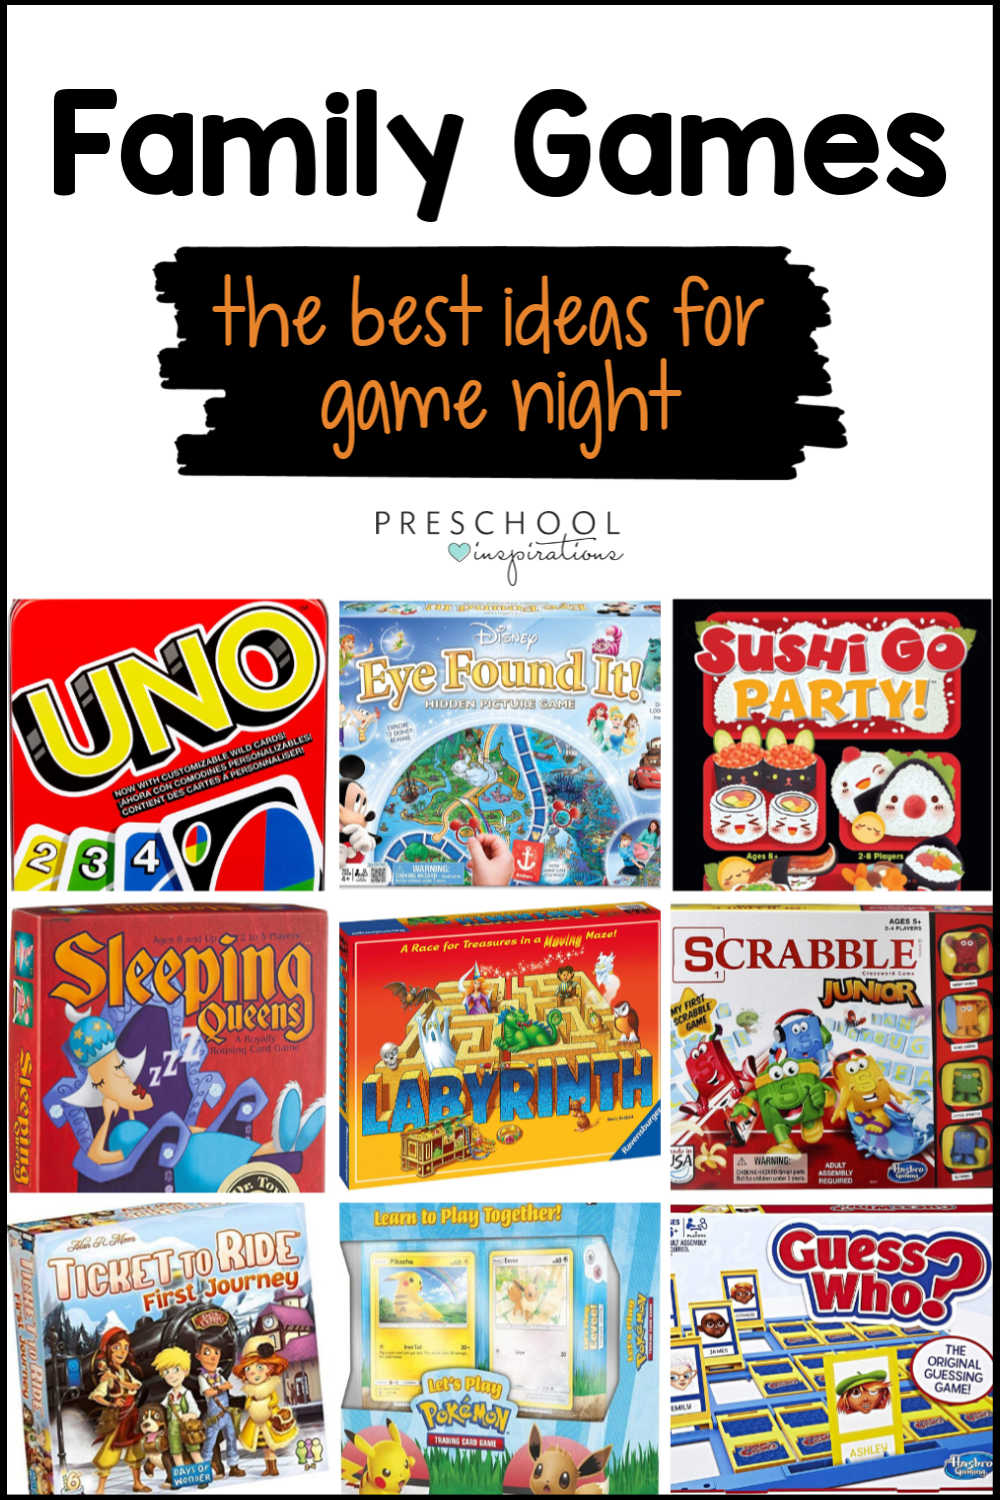 Find the perfect game for your next family game night! 20+ ideas for indoor games that kids and adults alike will love.